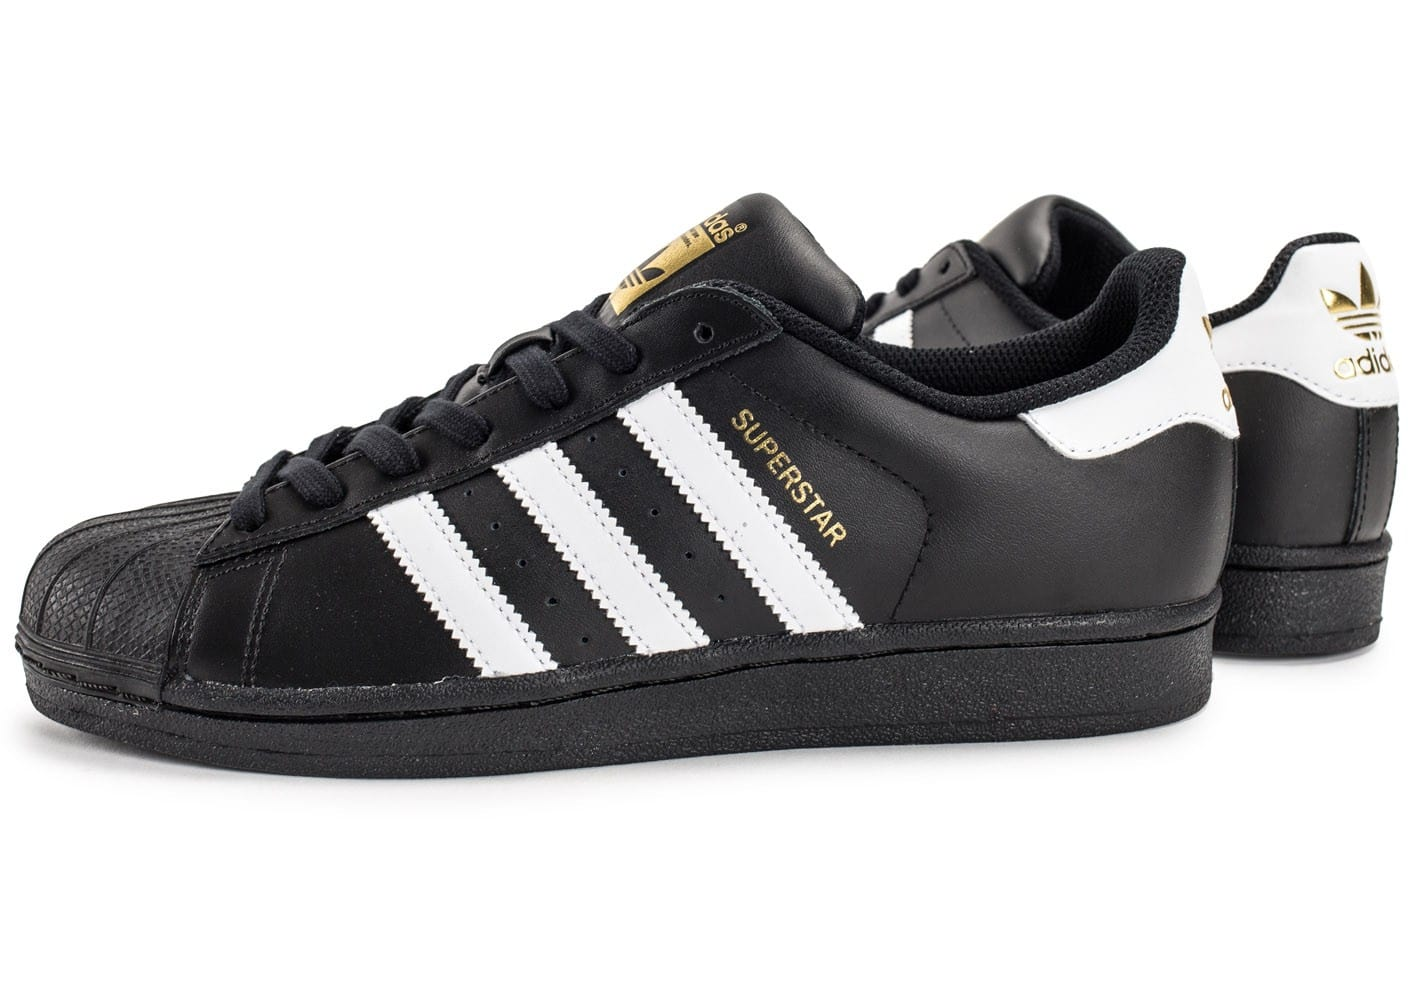 adidas superstar foundation chaussures. Black Bedroom Furniture Sets. Home Design Ideas